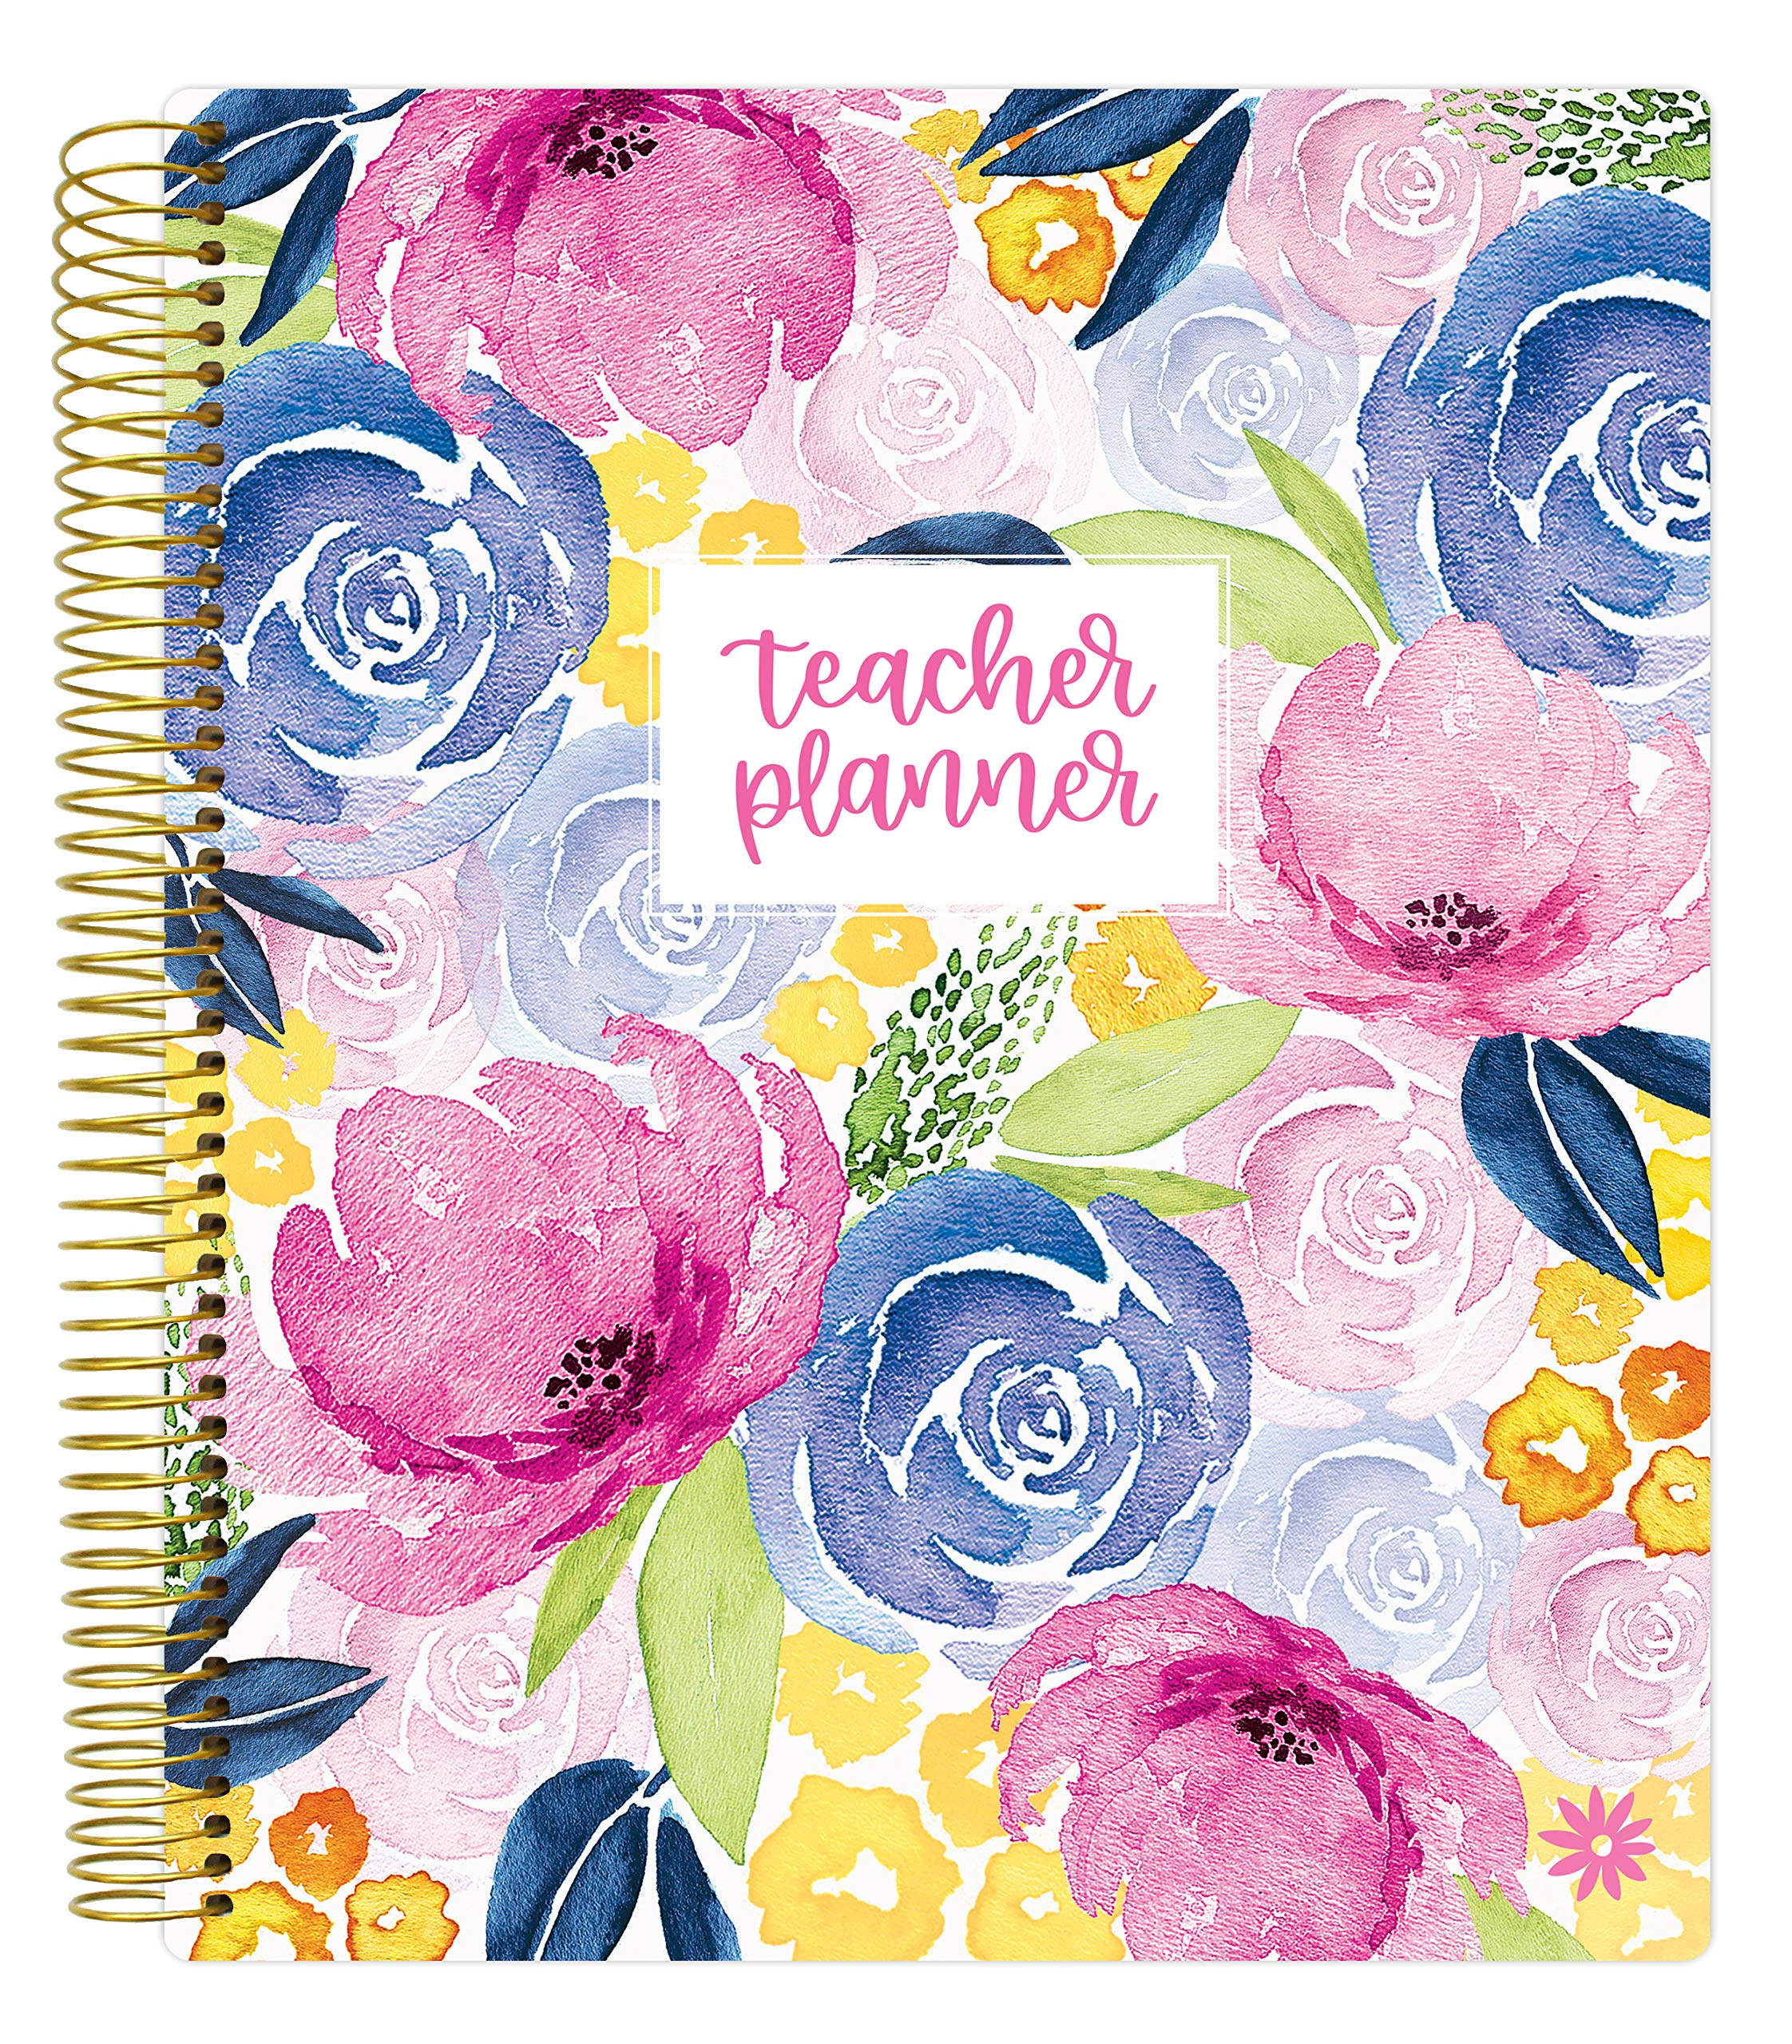 bloom daily planners Undated Academic Year Teacher Planner - Lesson Plan Calendar Book - 9'' x 11'' - Watercolor Floral